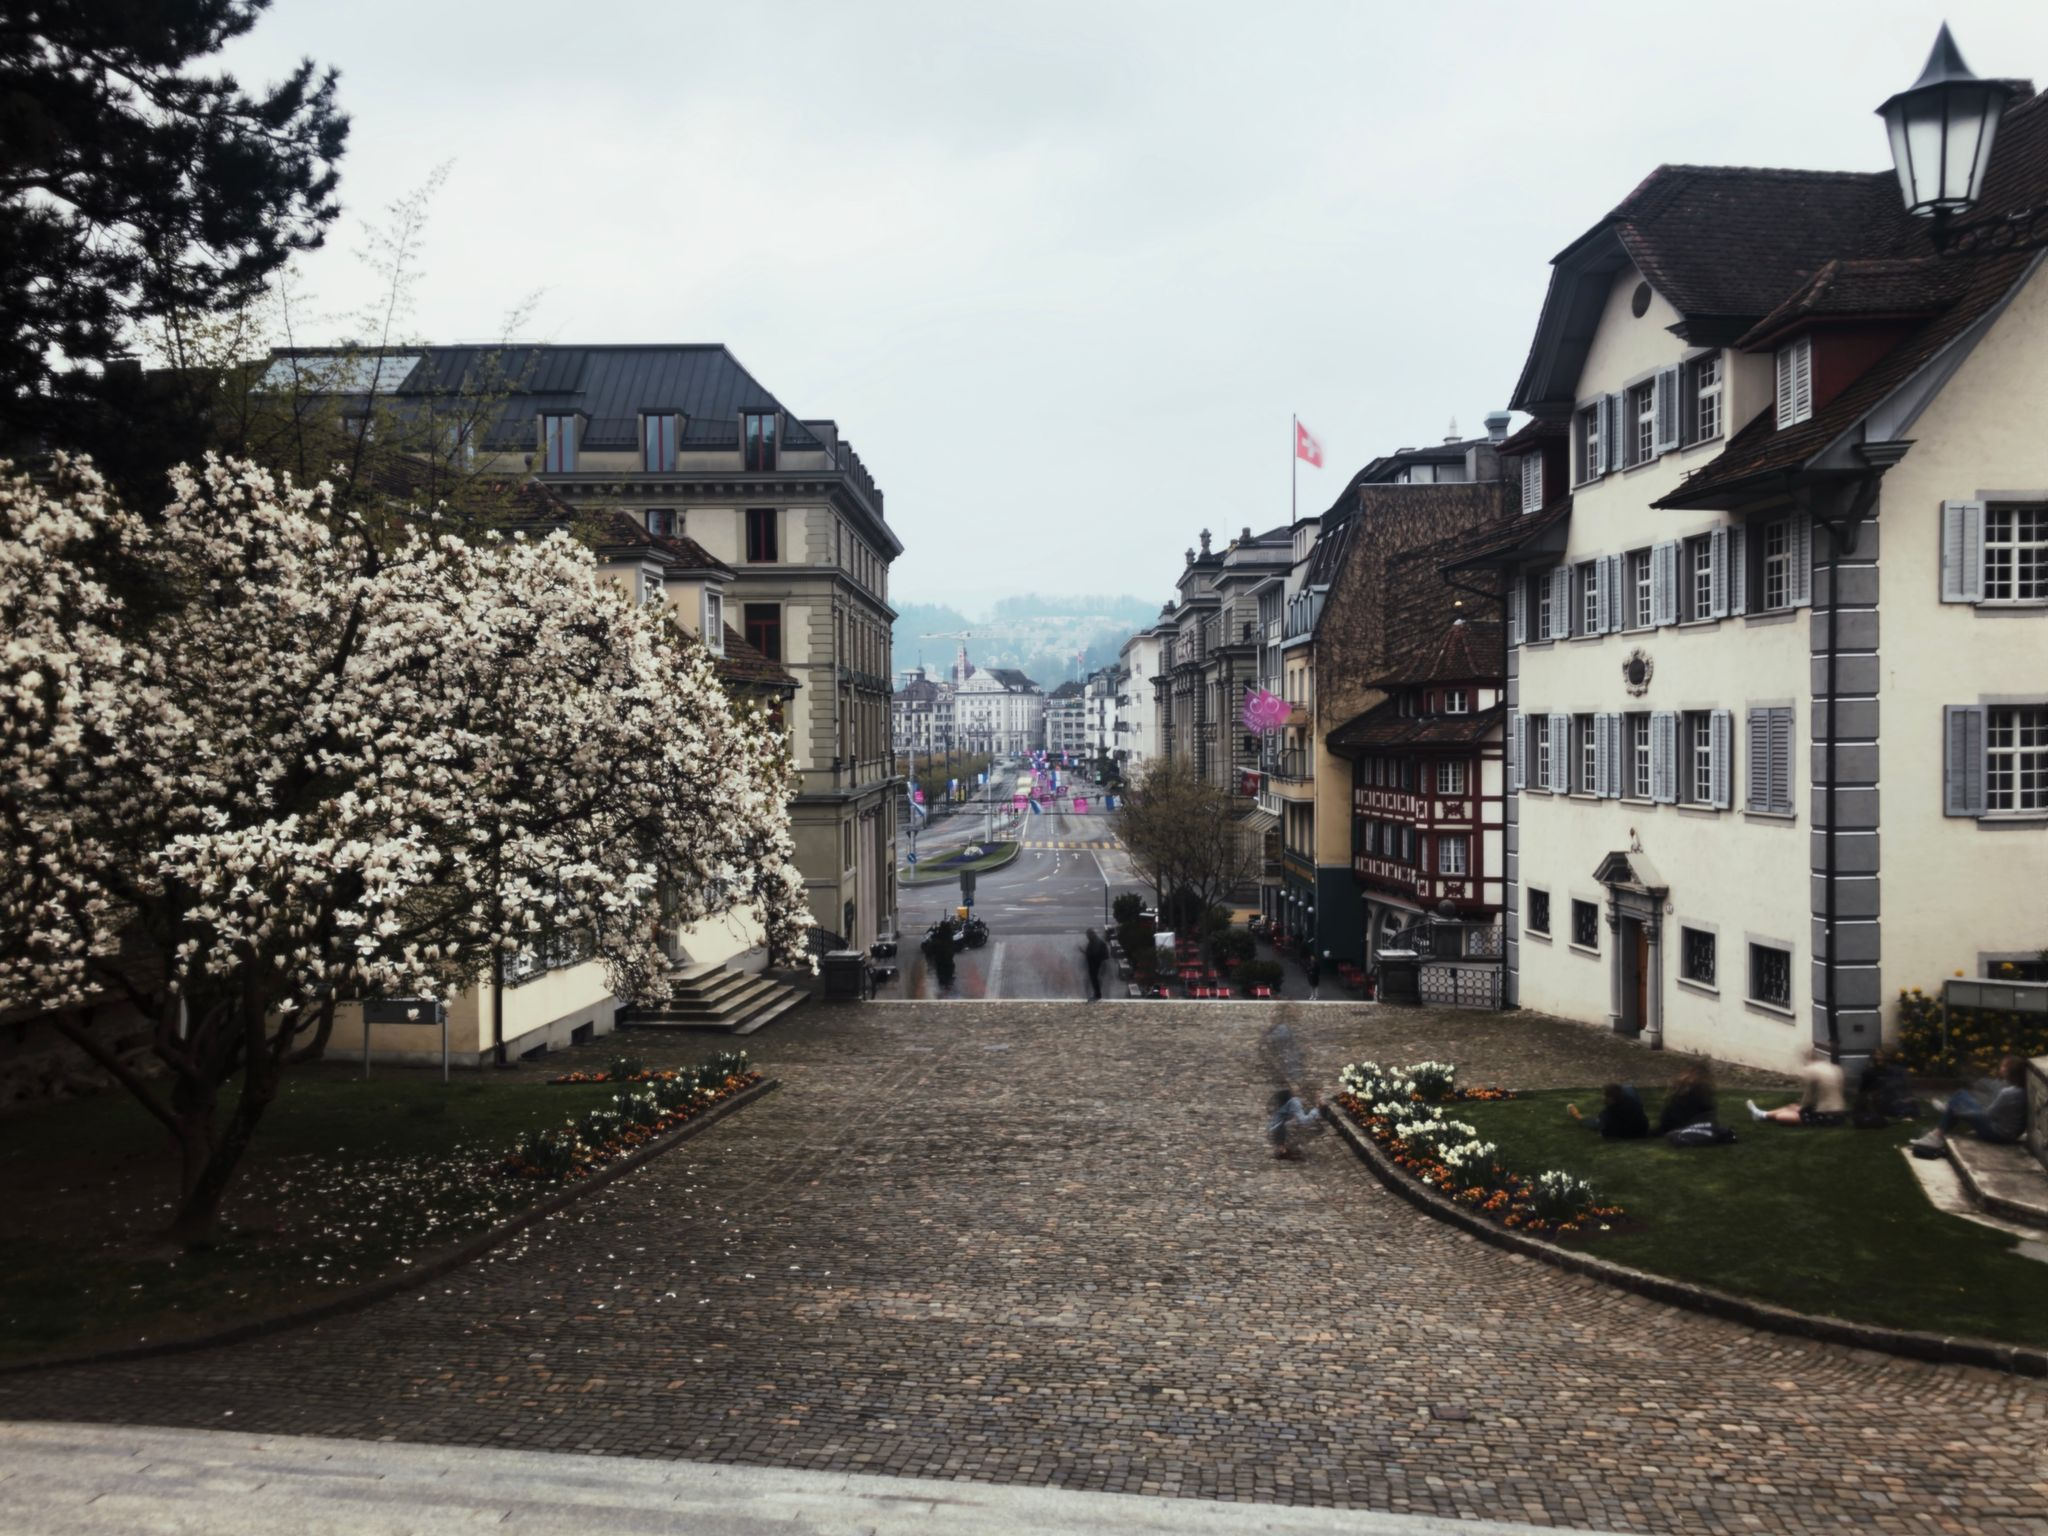 A view down a main street in Lucerne, with tram tracks running down it, old buildings on the right side, and trees beside a river on the left.